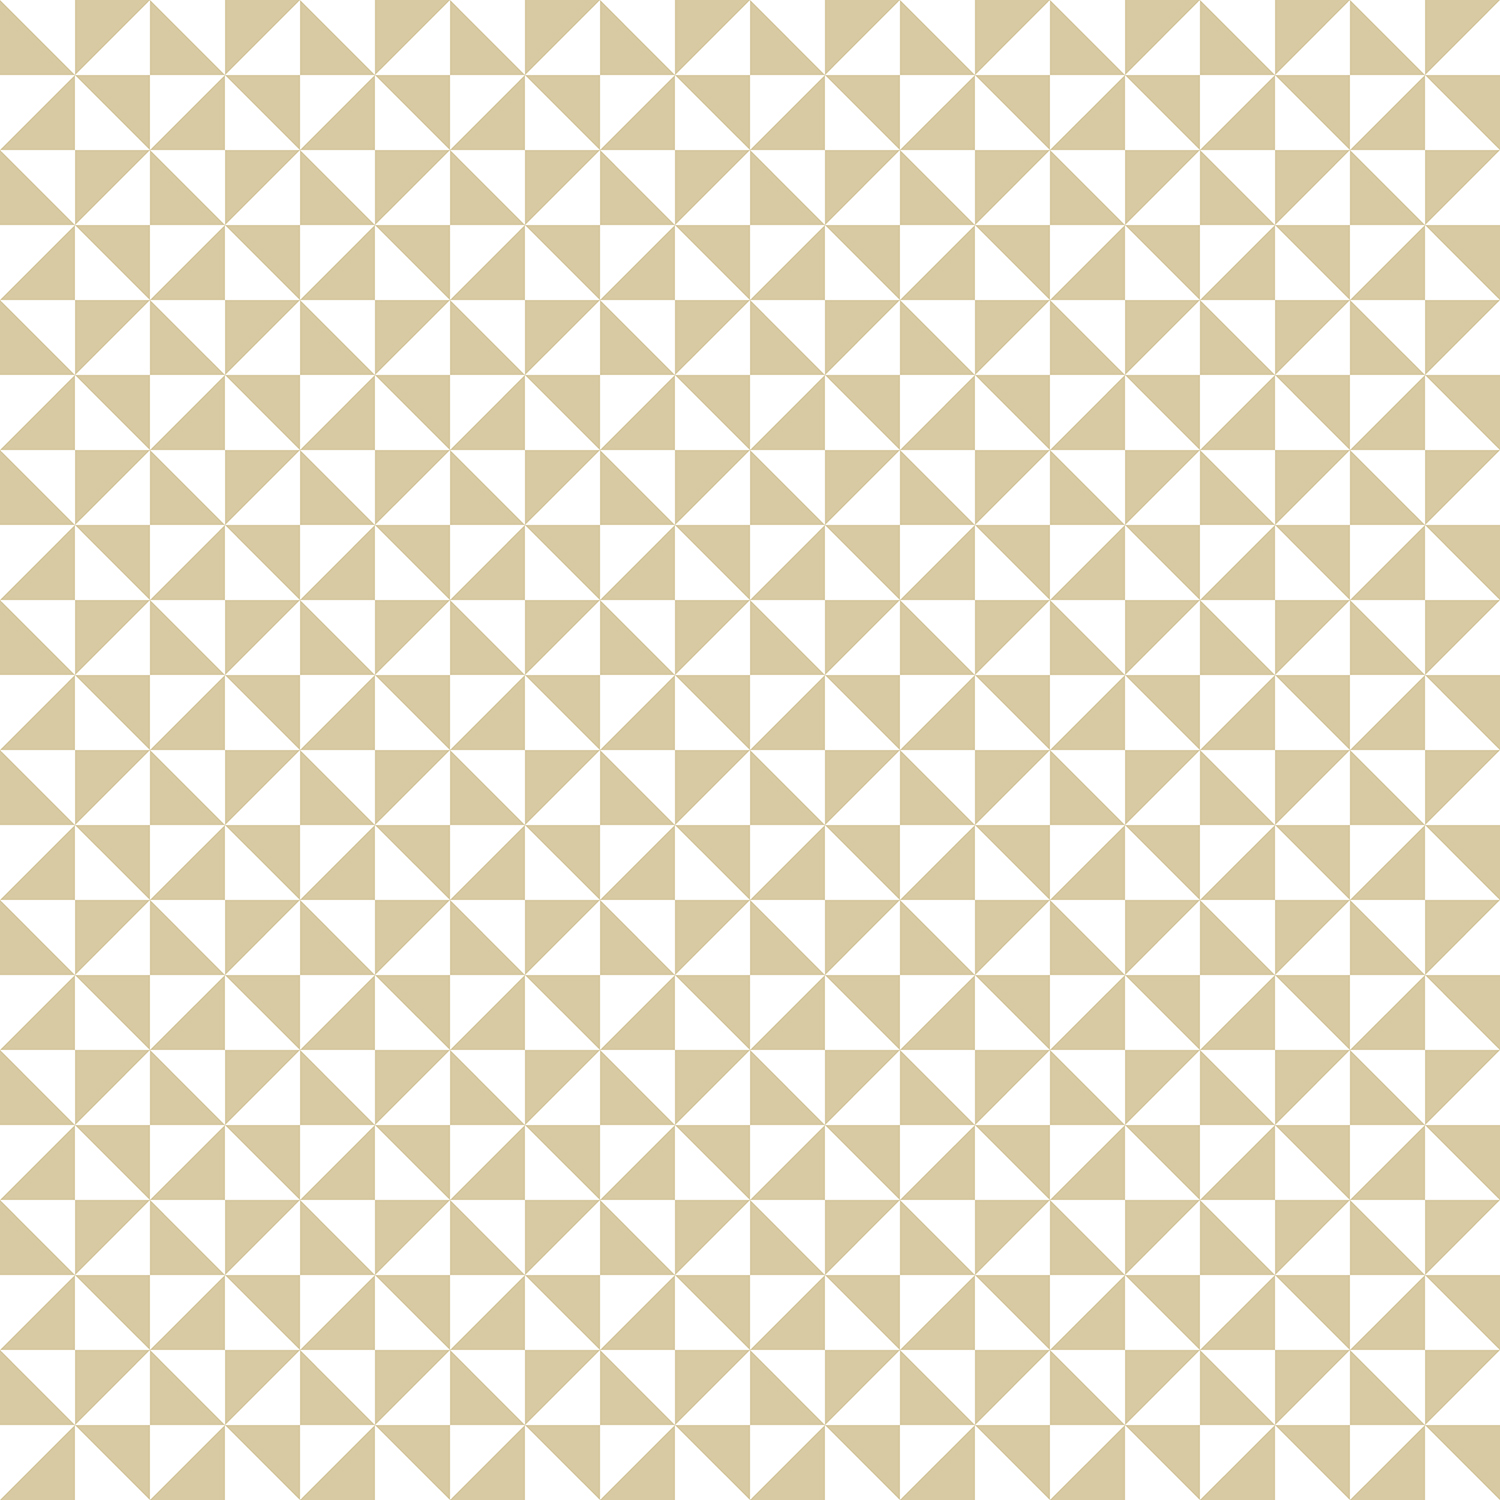 Seamless Patterns example image 7